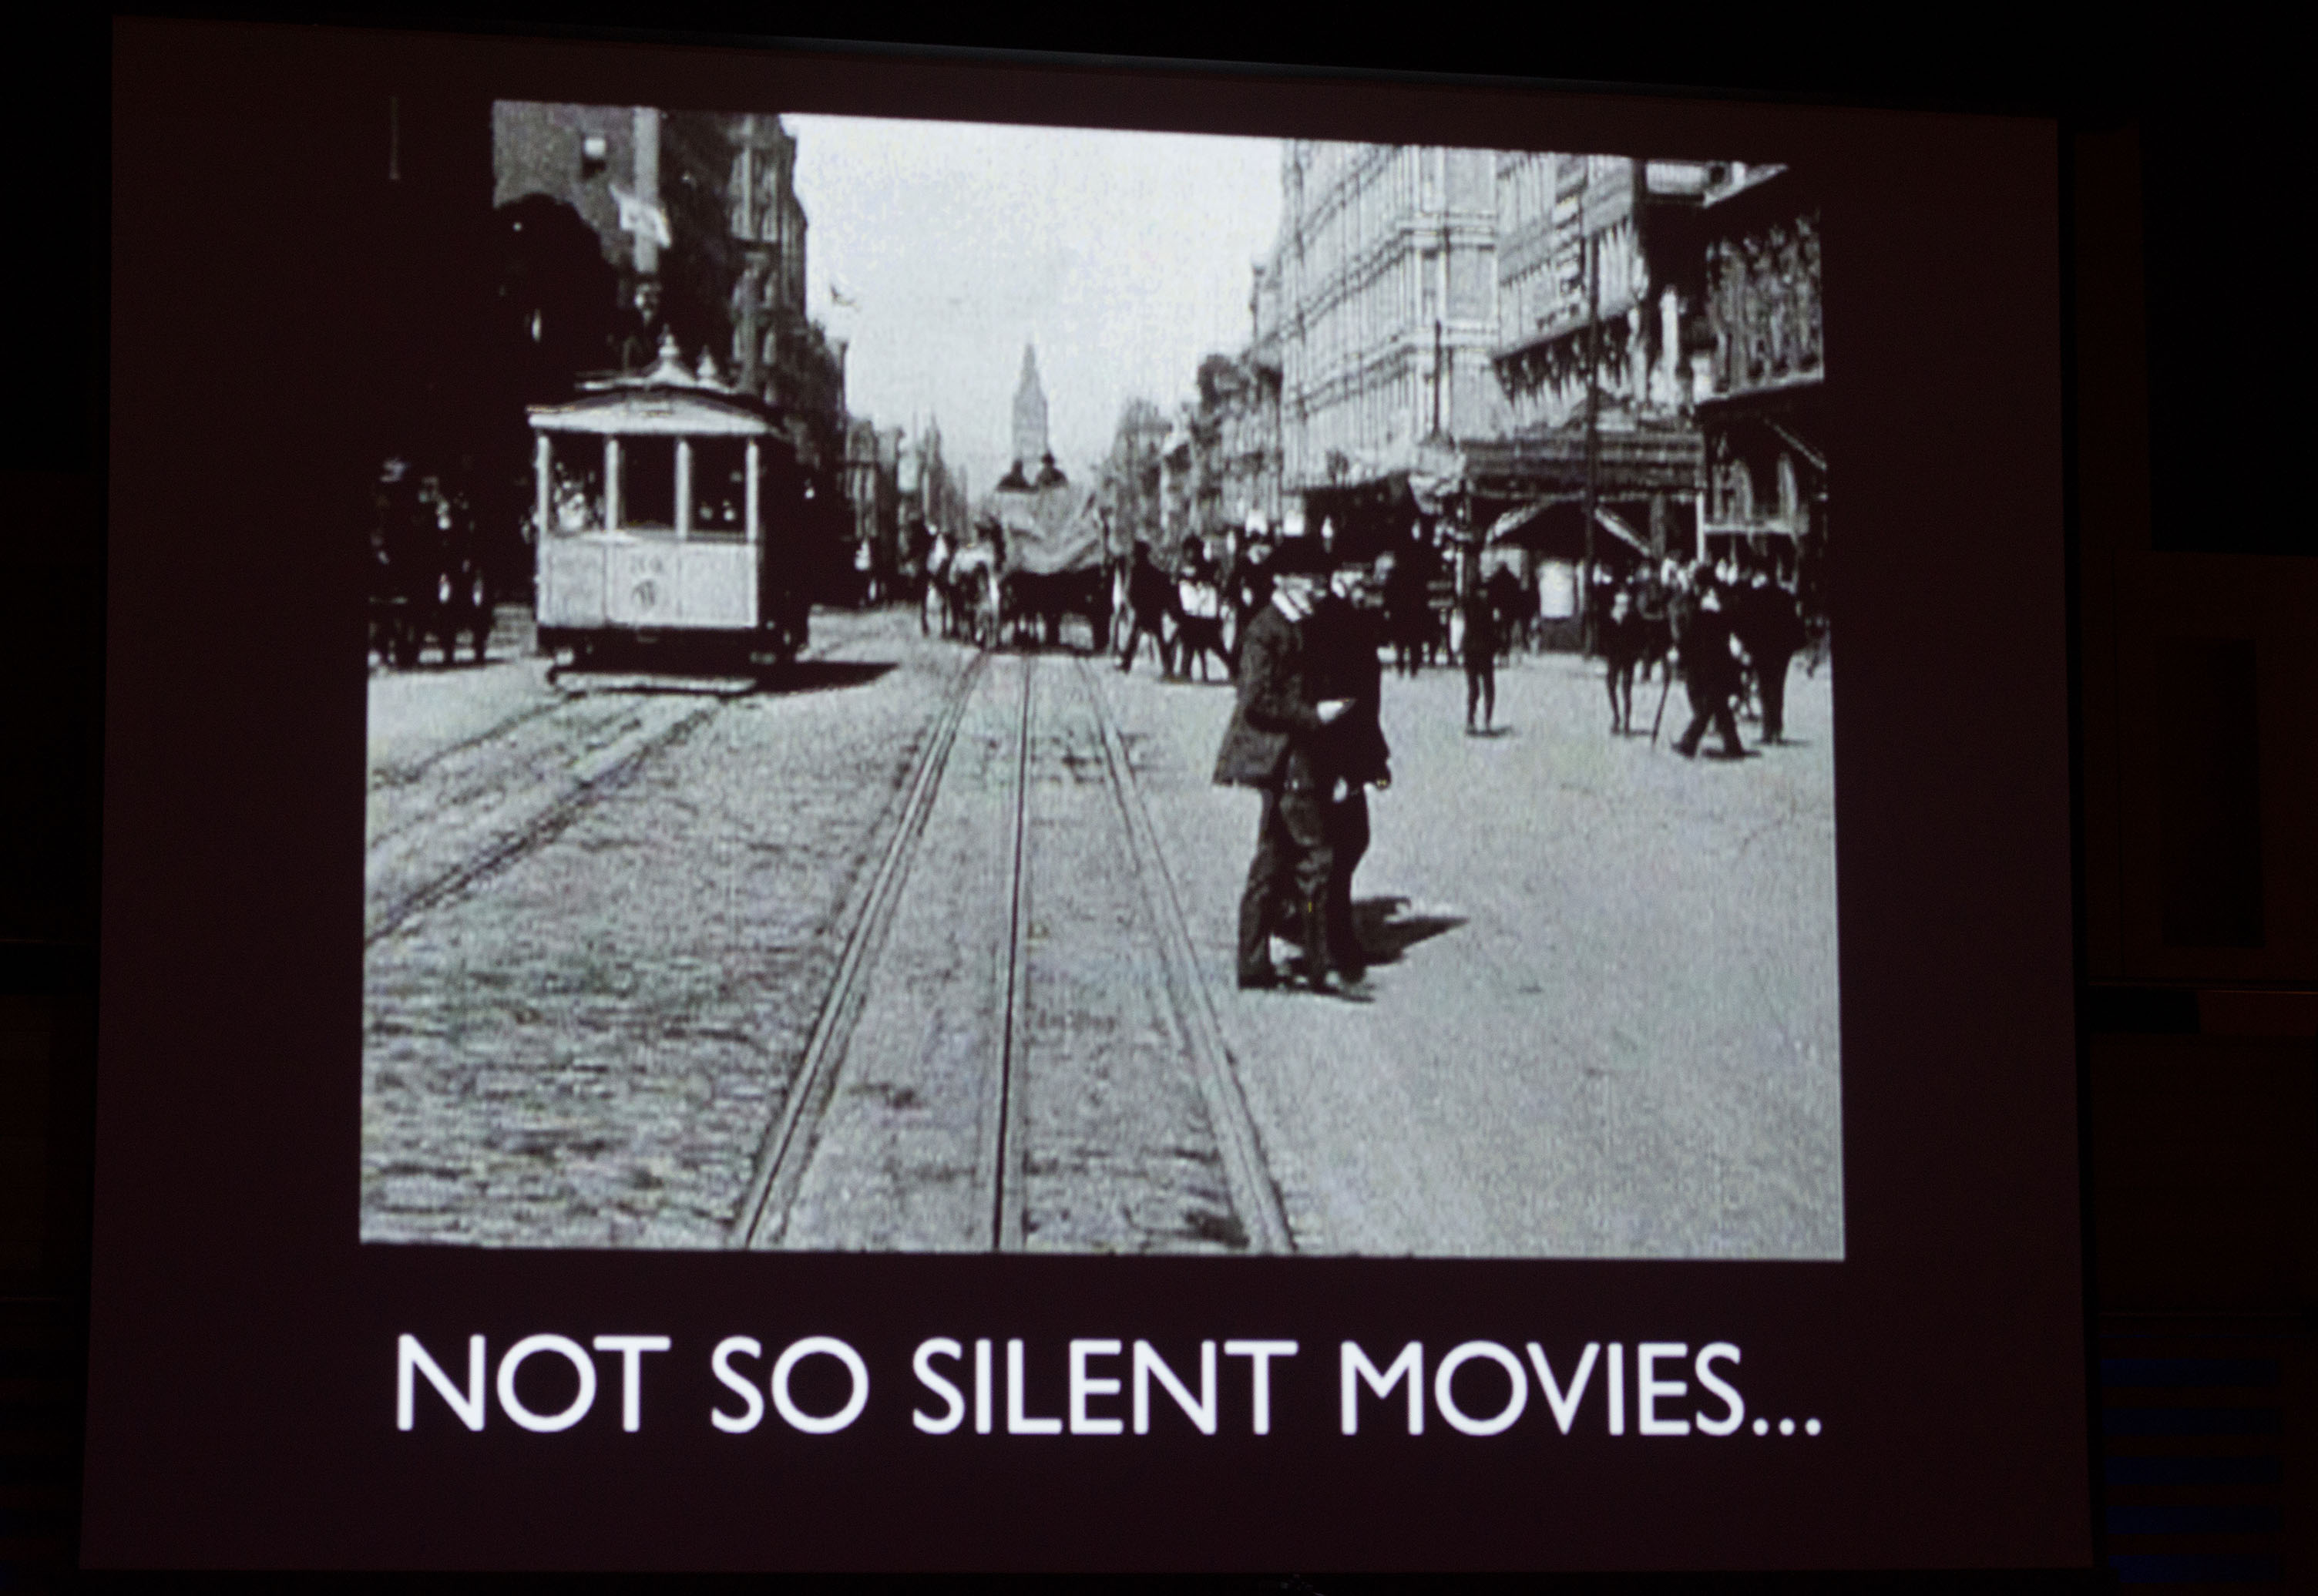 Not so silent movies with guests nils petter molvær and jan ban